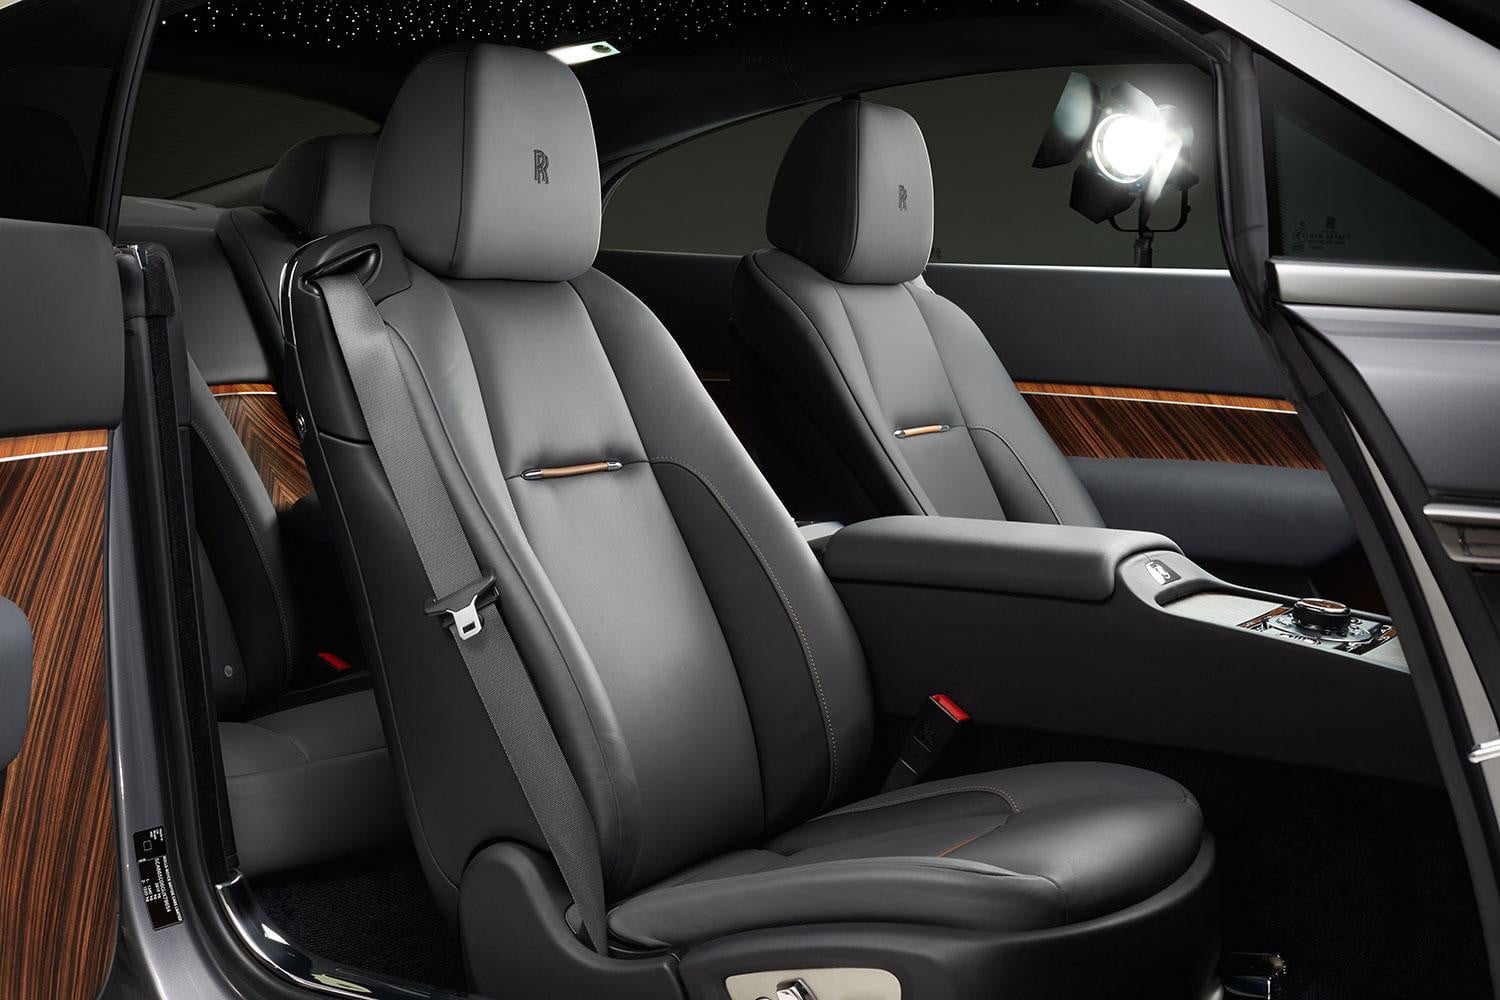 rolls royce wraith 39 inspired film 39 new york auto show digital trends. Black Bedroom Furniture Sets. Home Design Ideas